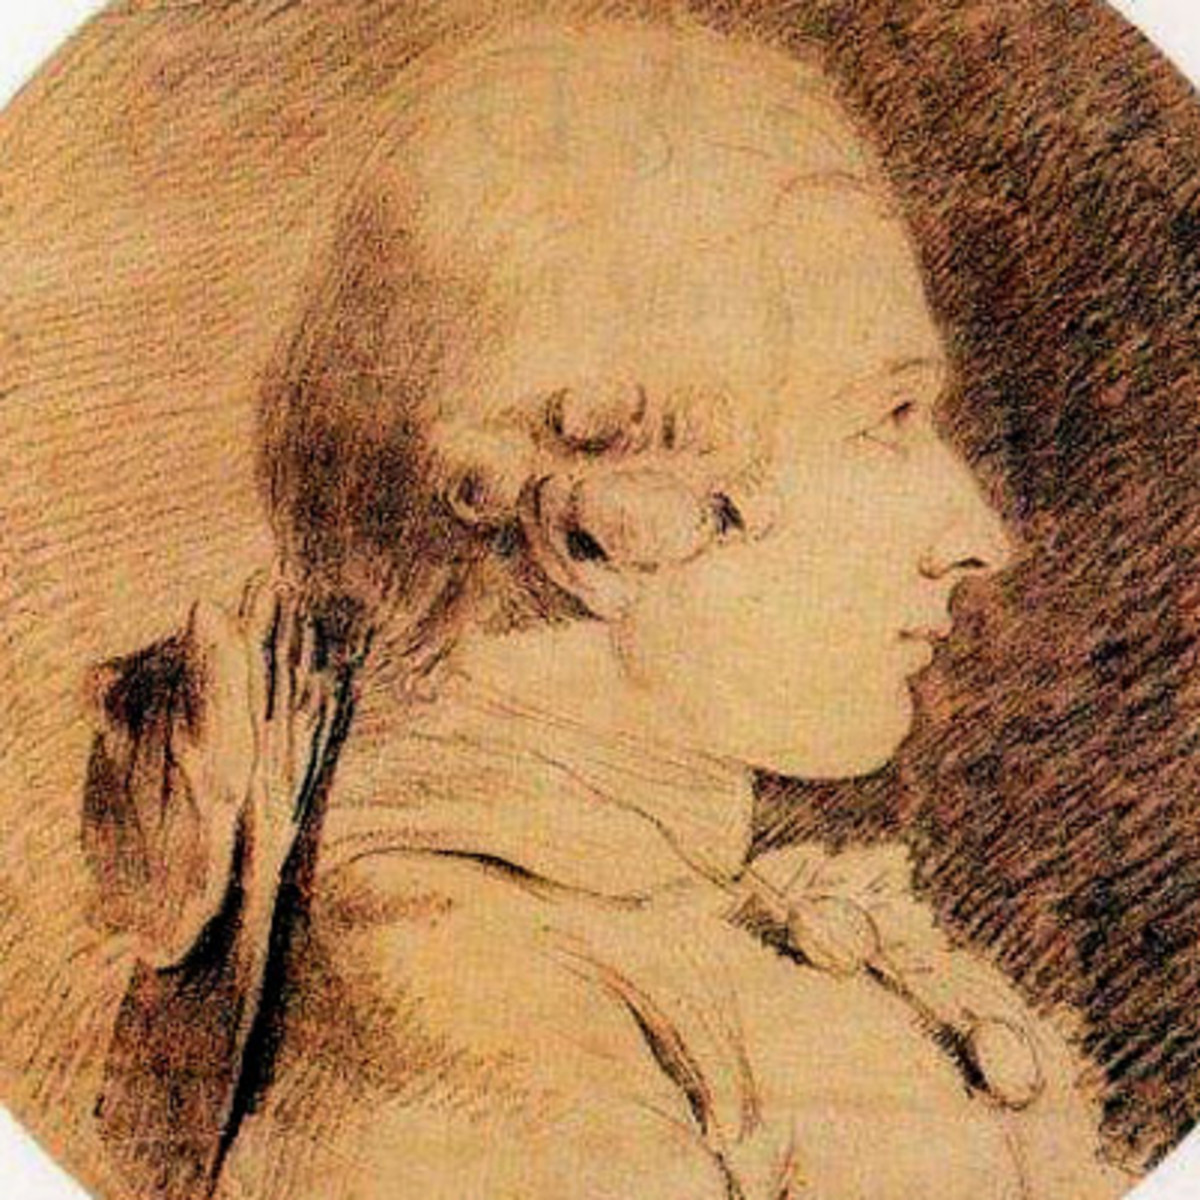 marquis de sade essay In 1785, condorcet wrote an essay on the application of analysis of the probability of decisions made on a majority vote, one of his most important works this work described several now famous results media related to marquis de condorcet at wikimedia commons.